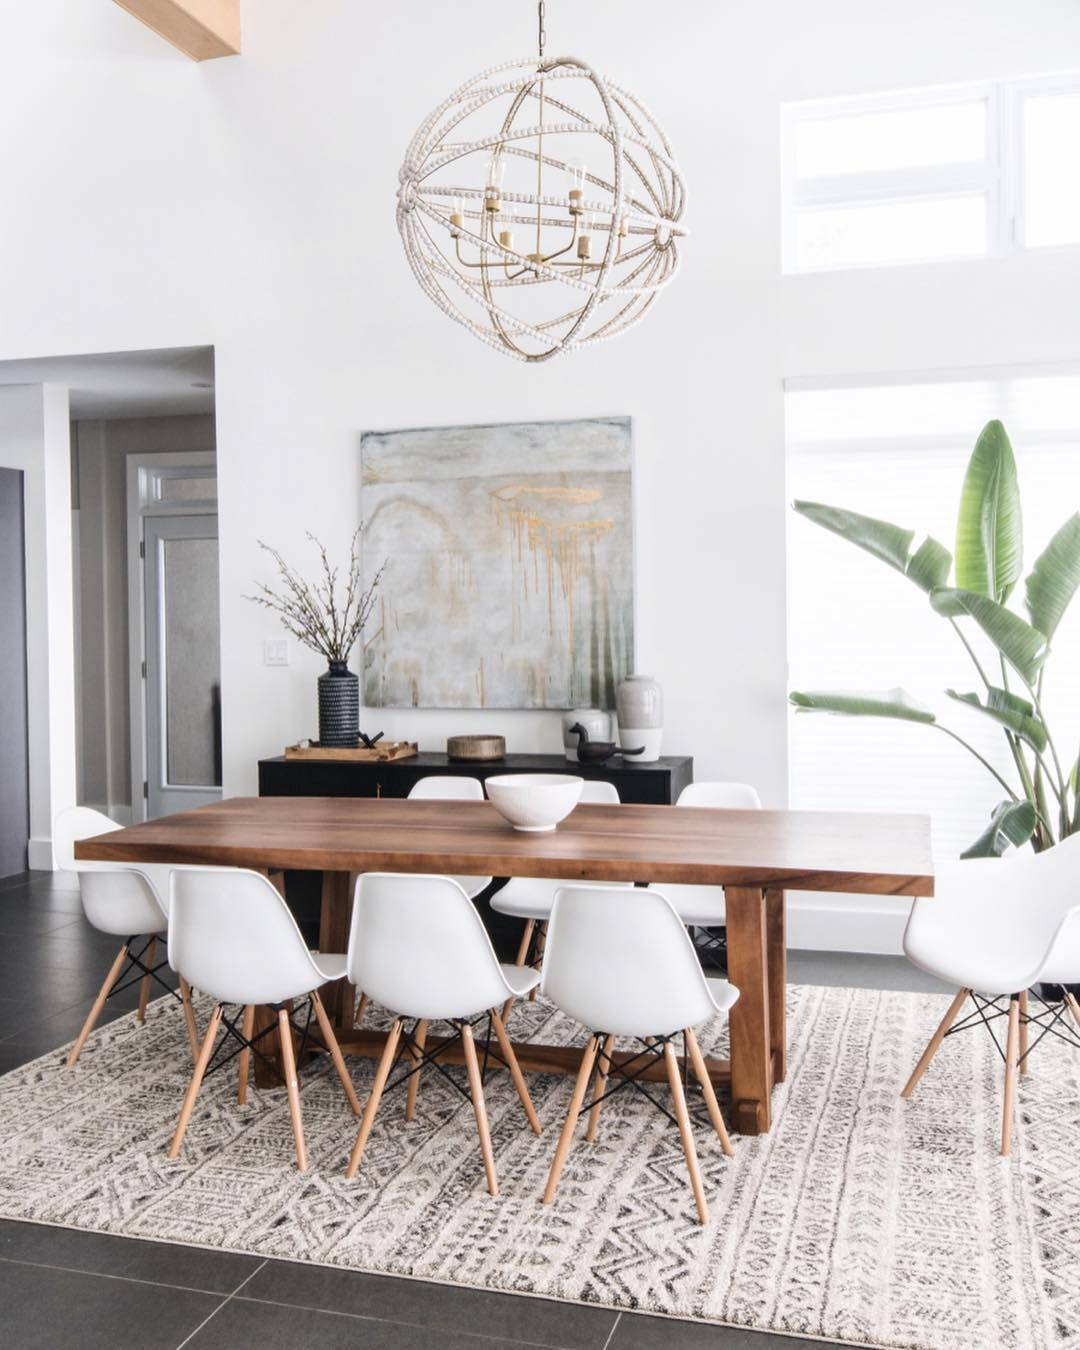 Pin By Teresa West On Diningroom Family Dining Rooms Minimalist